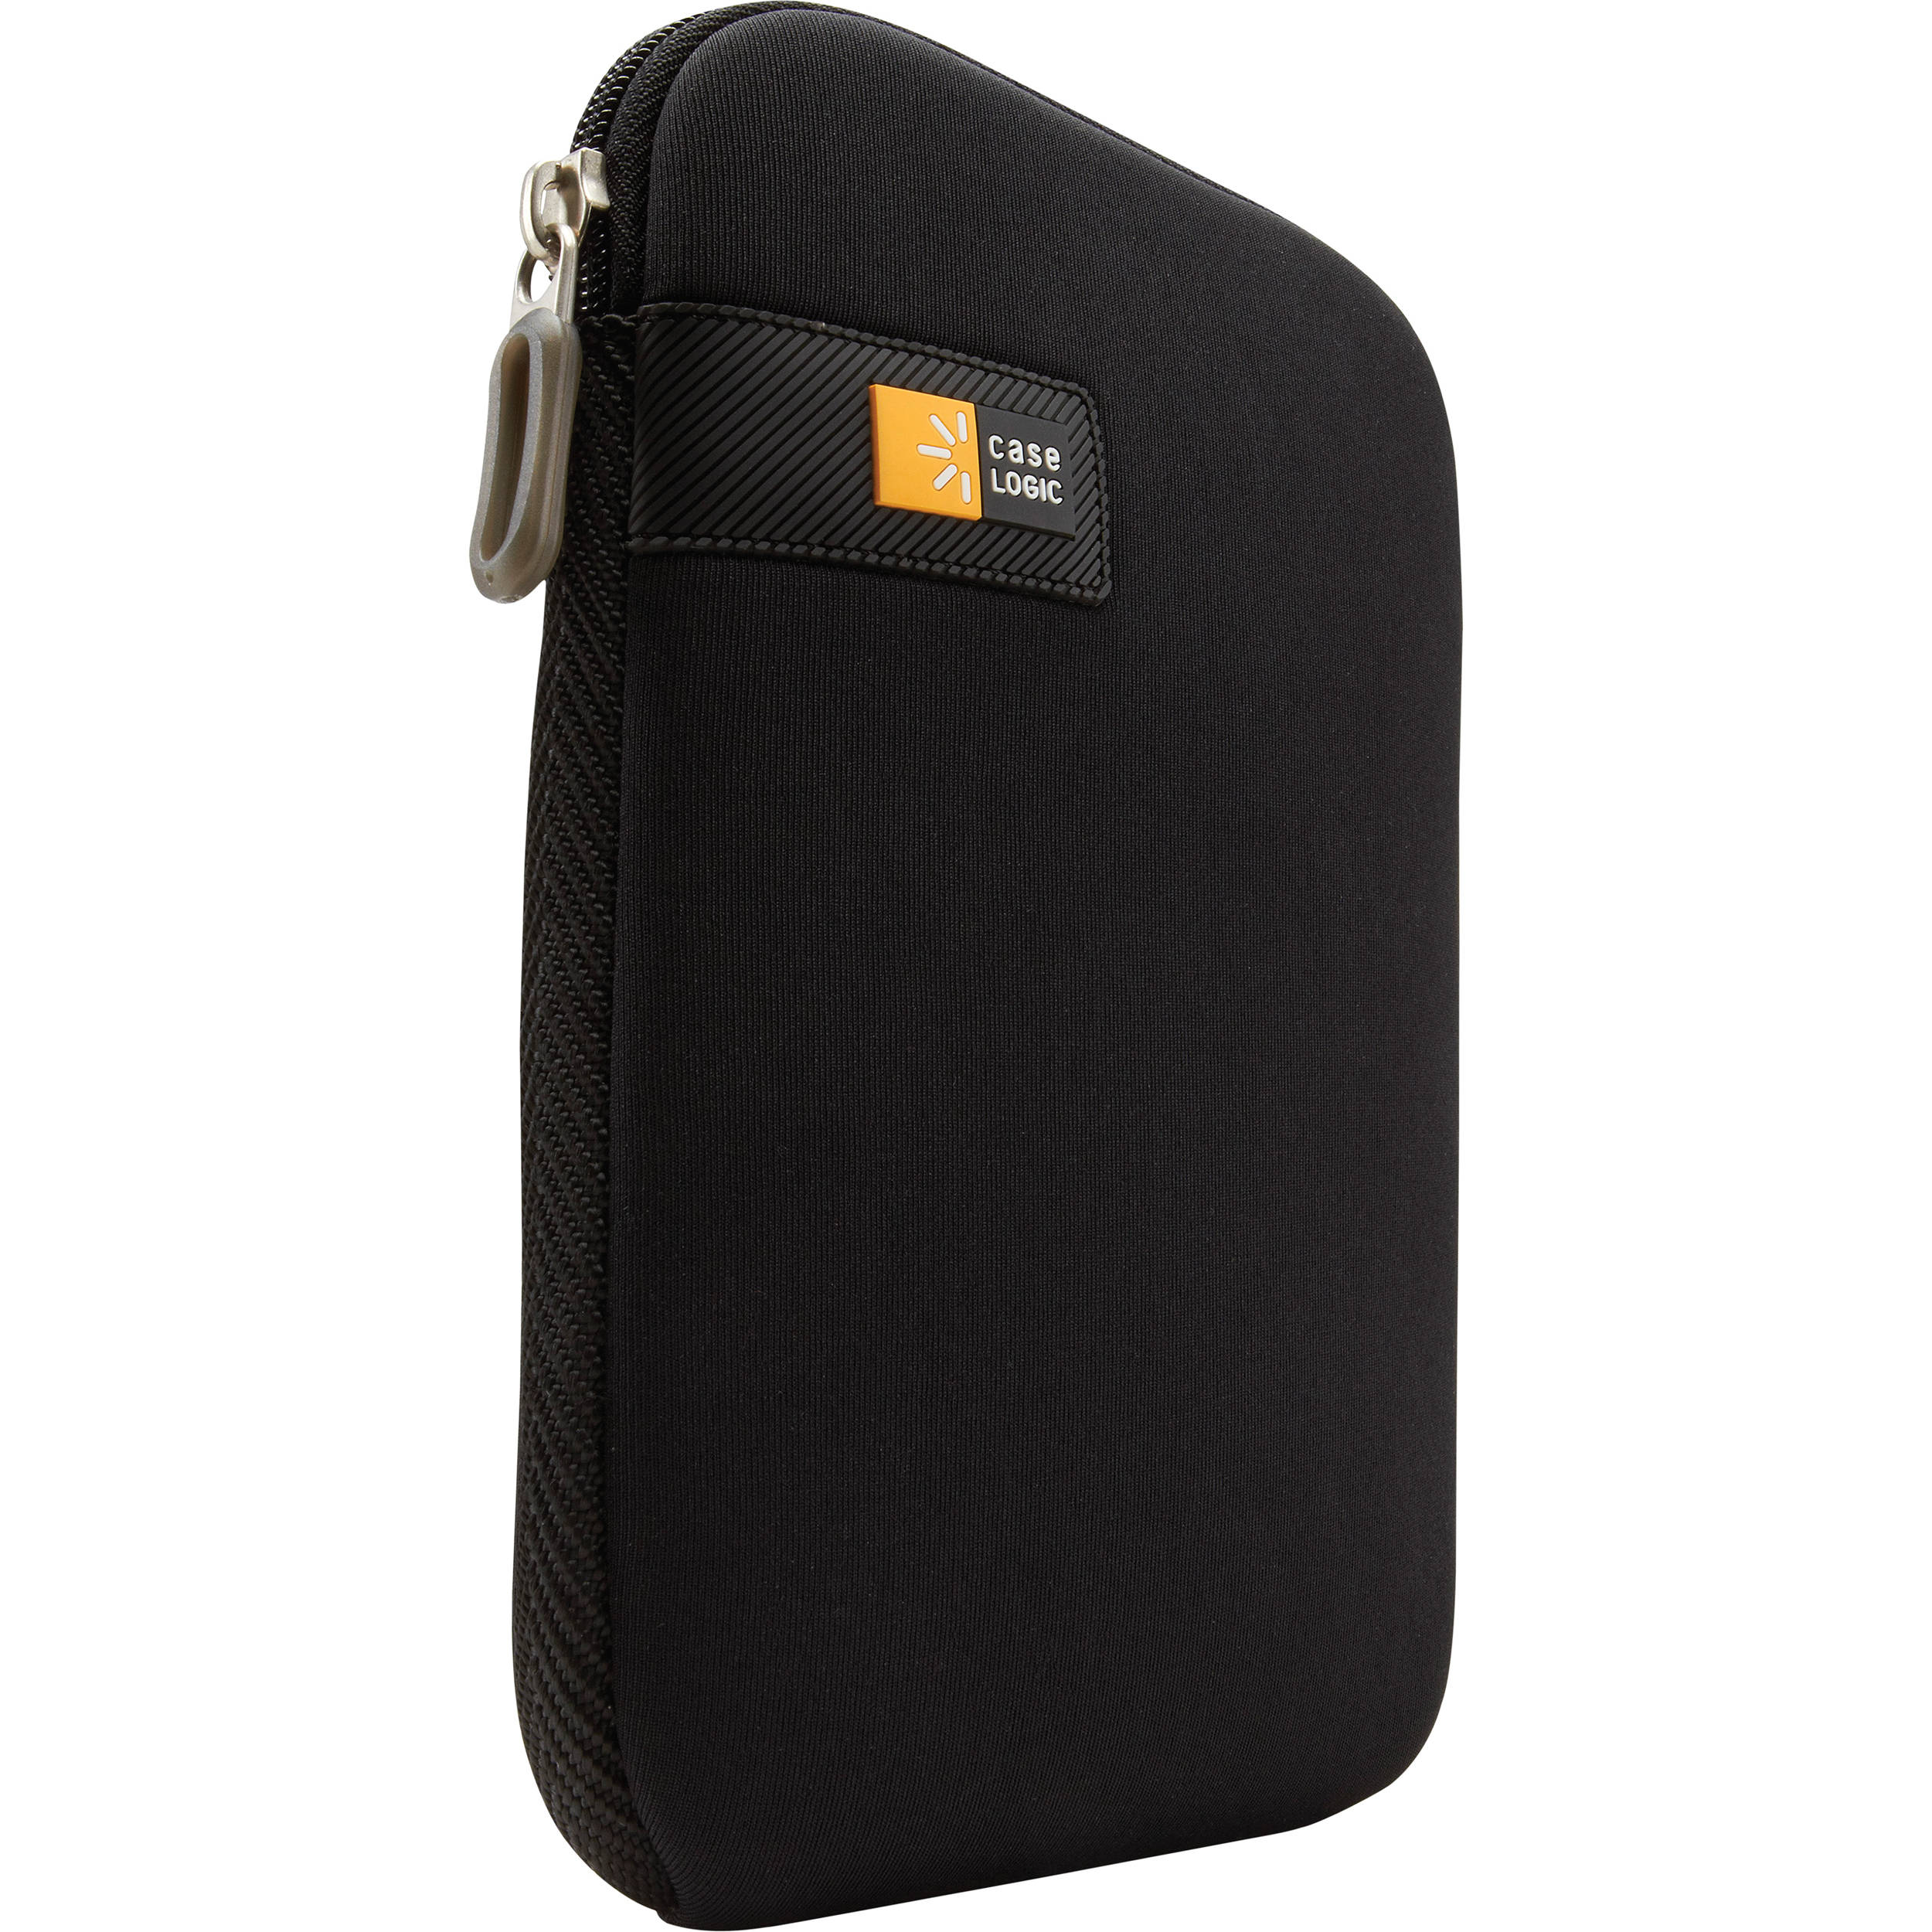 Case logic 7 tablet sleeve lapst 107 black b h photo video for Housse case logic